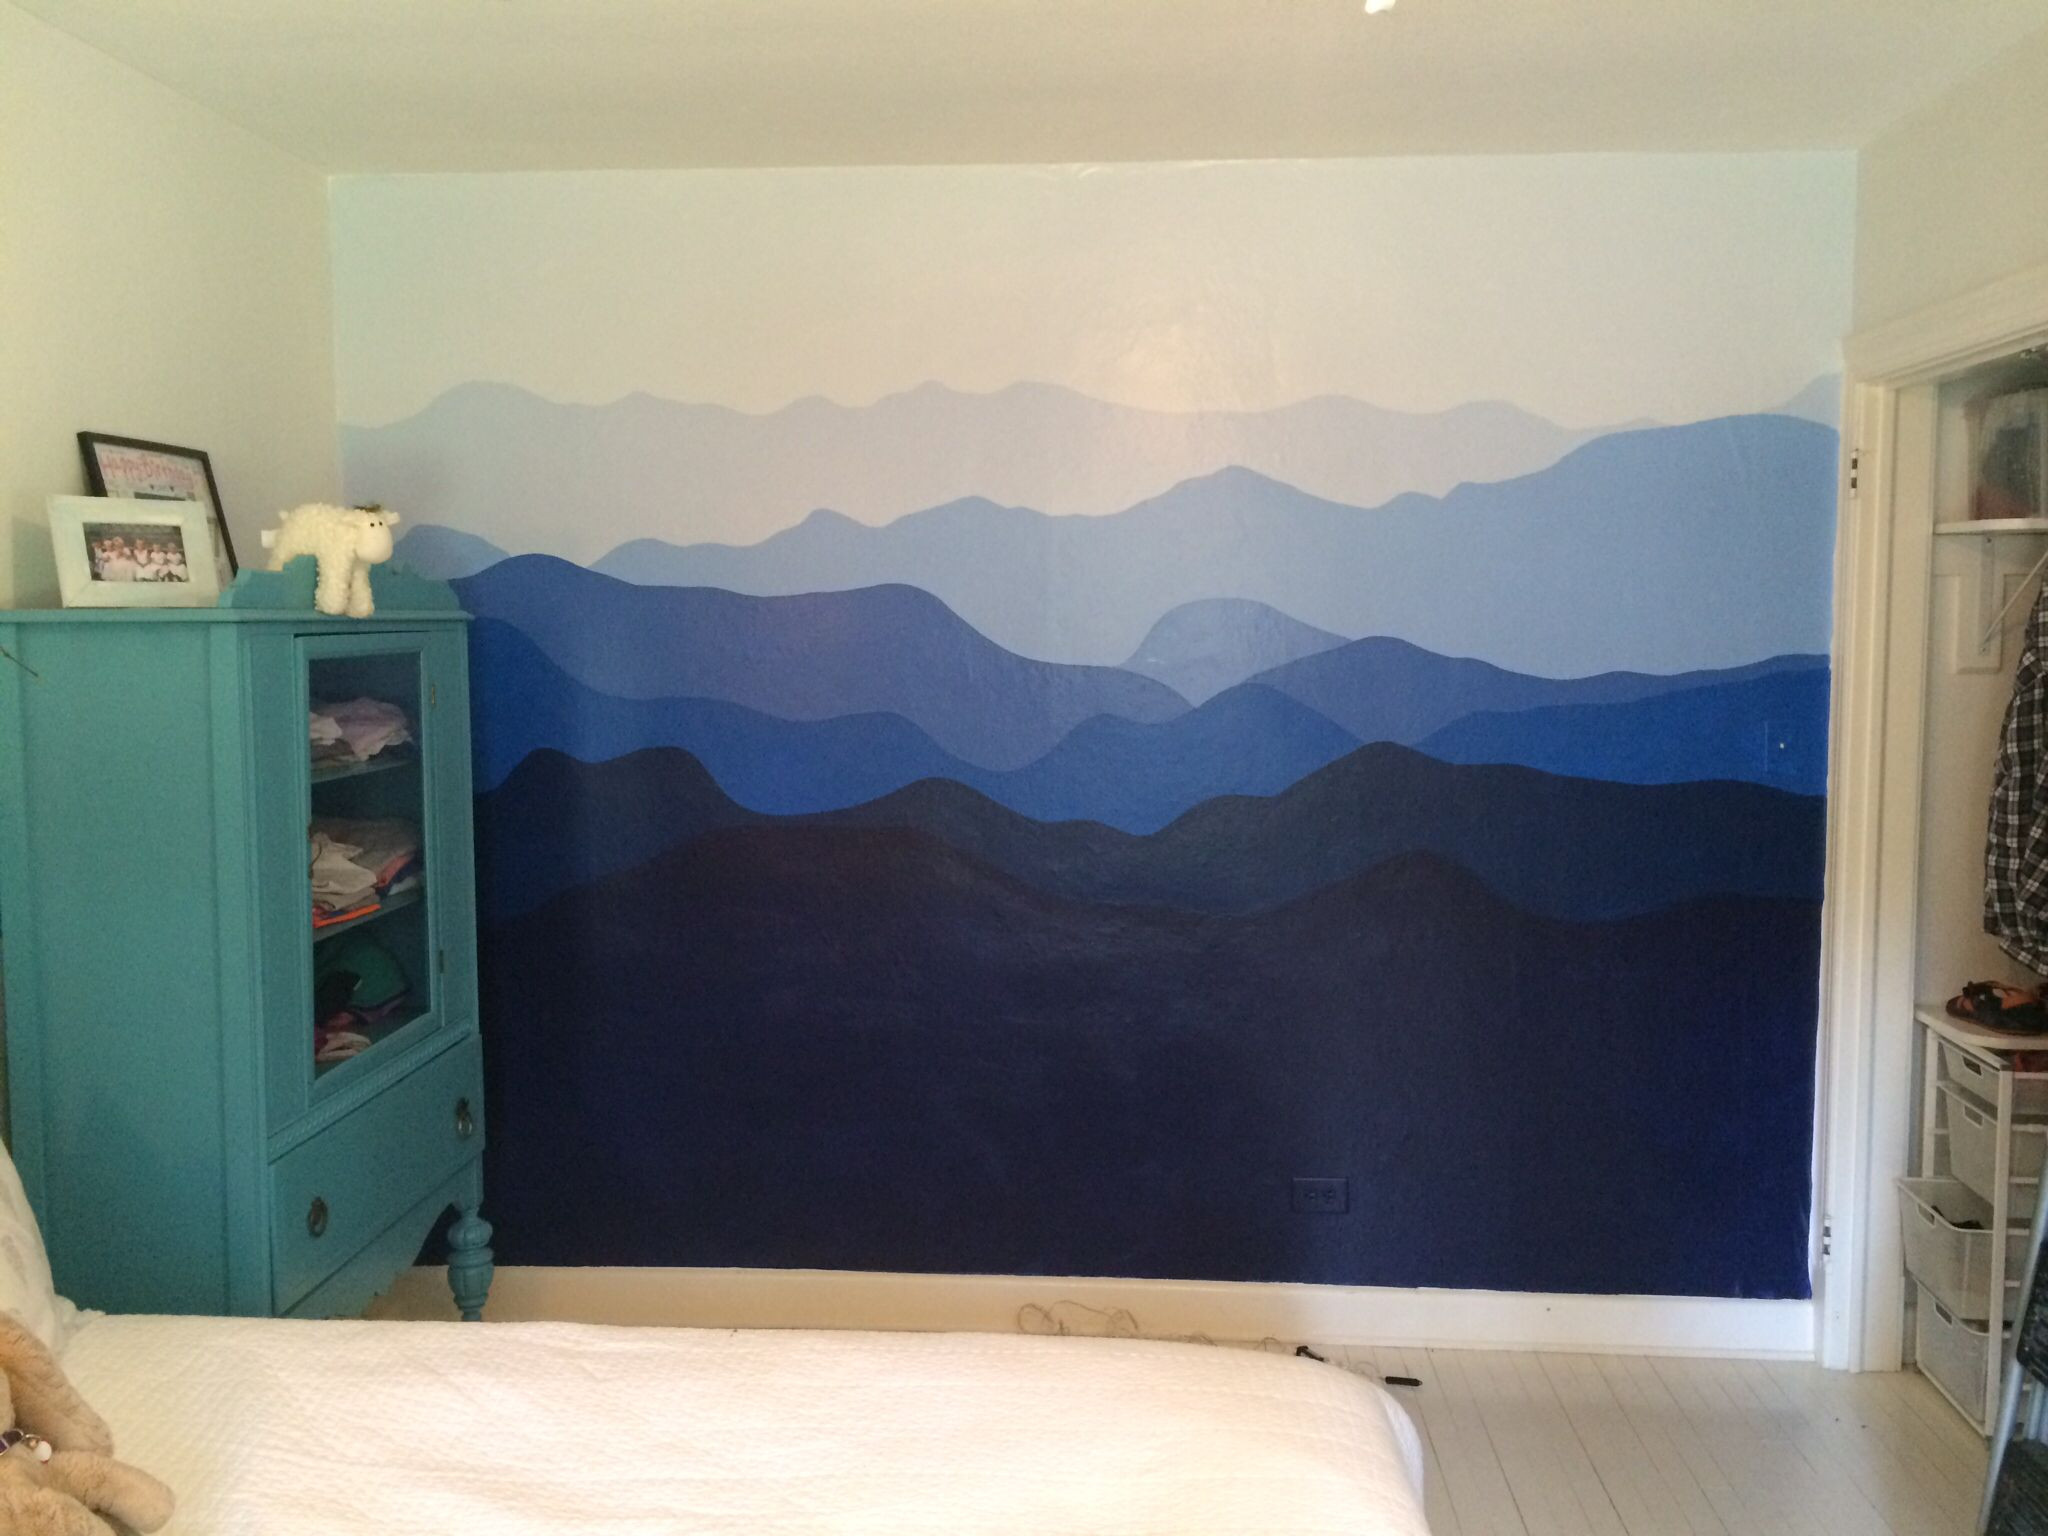 Baby Girl Nursery Removable Wallpaper Blue Ridge Mountains Painted On Bedroom Wall Interiors